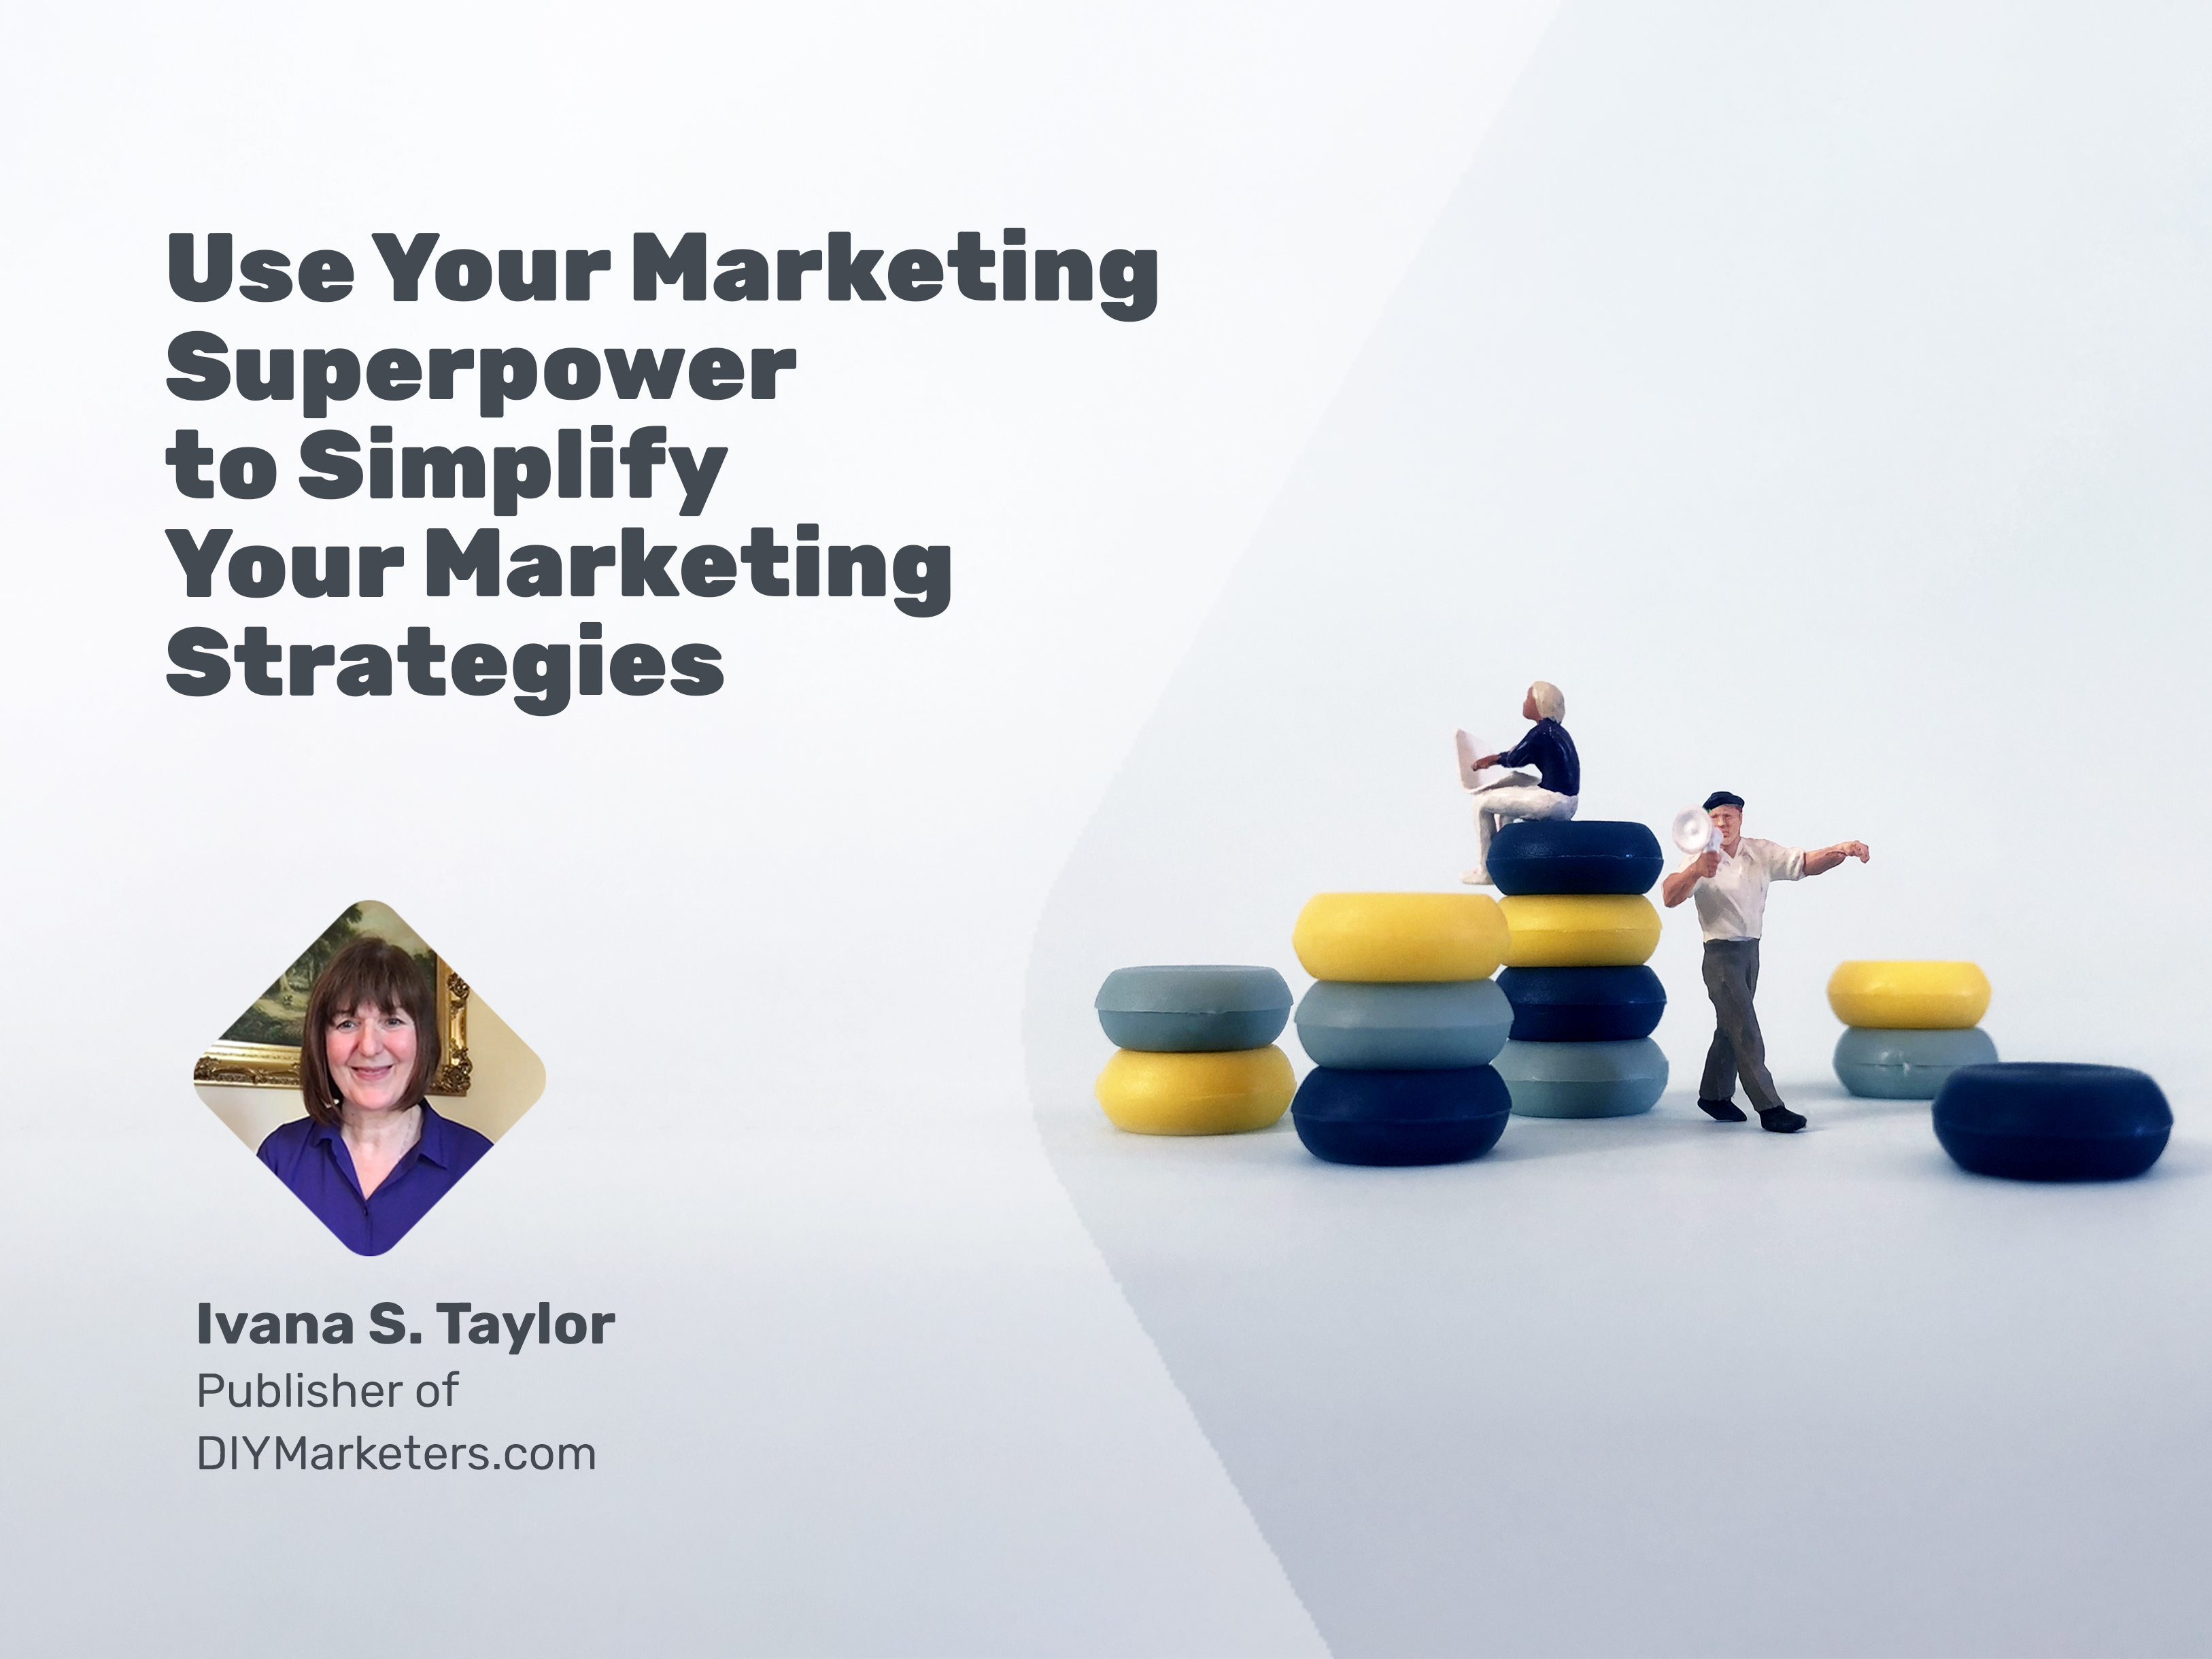 Use Your Marketing Superpower to Simplify Your Marketing Strategies